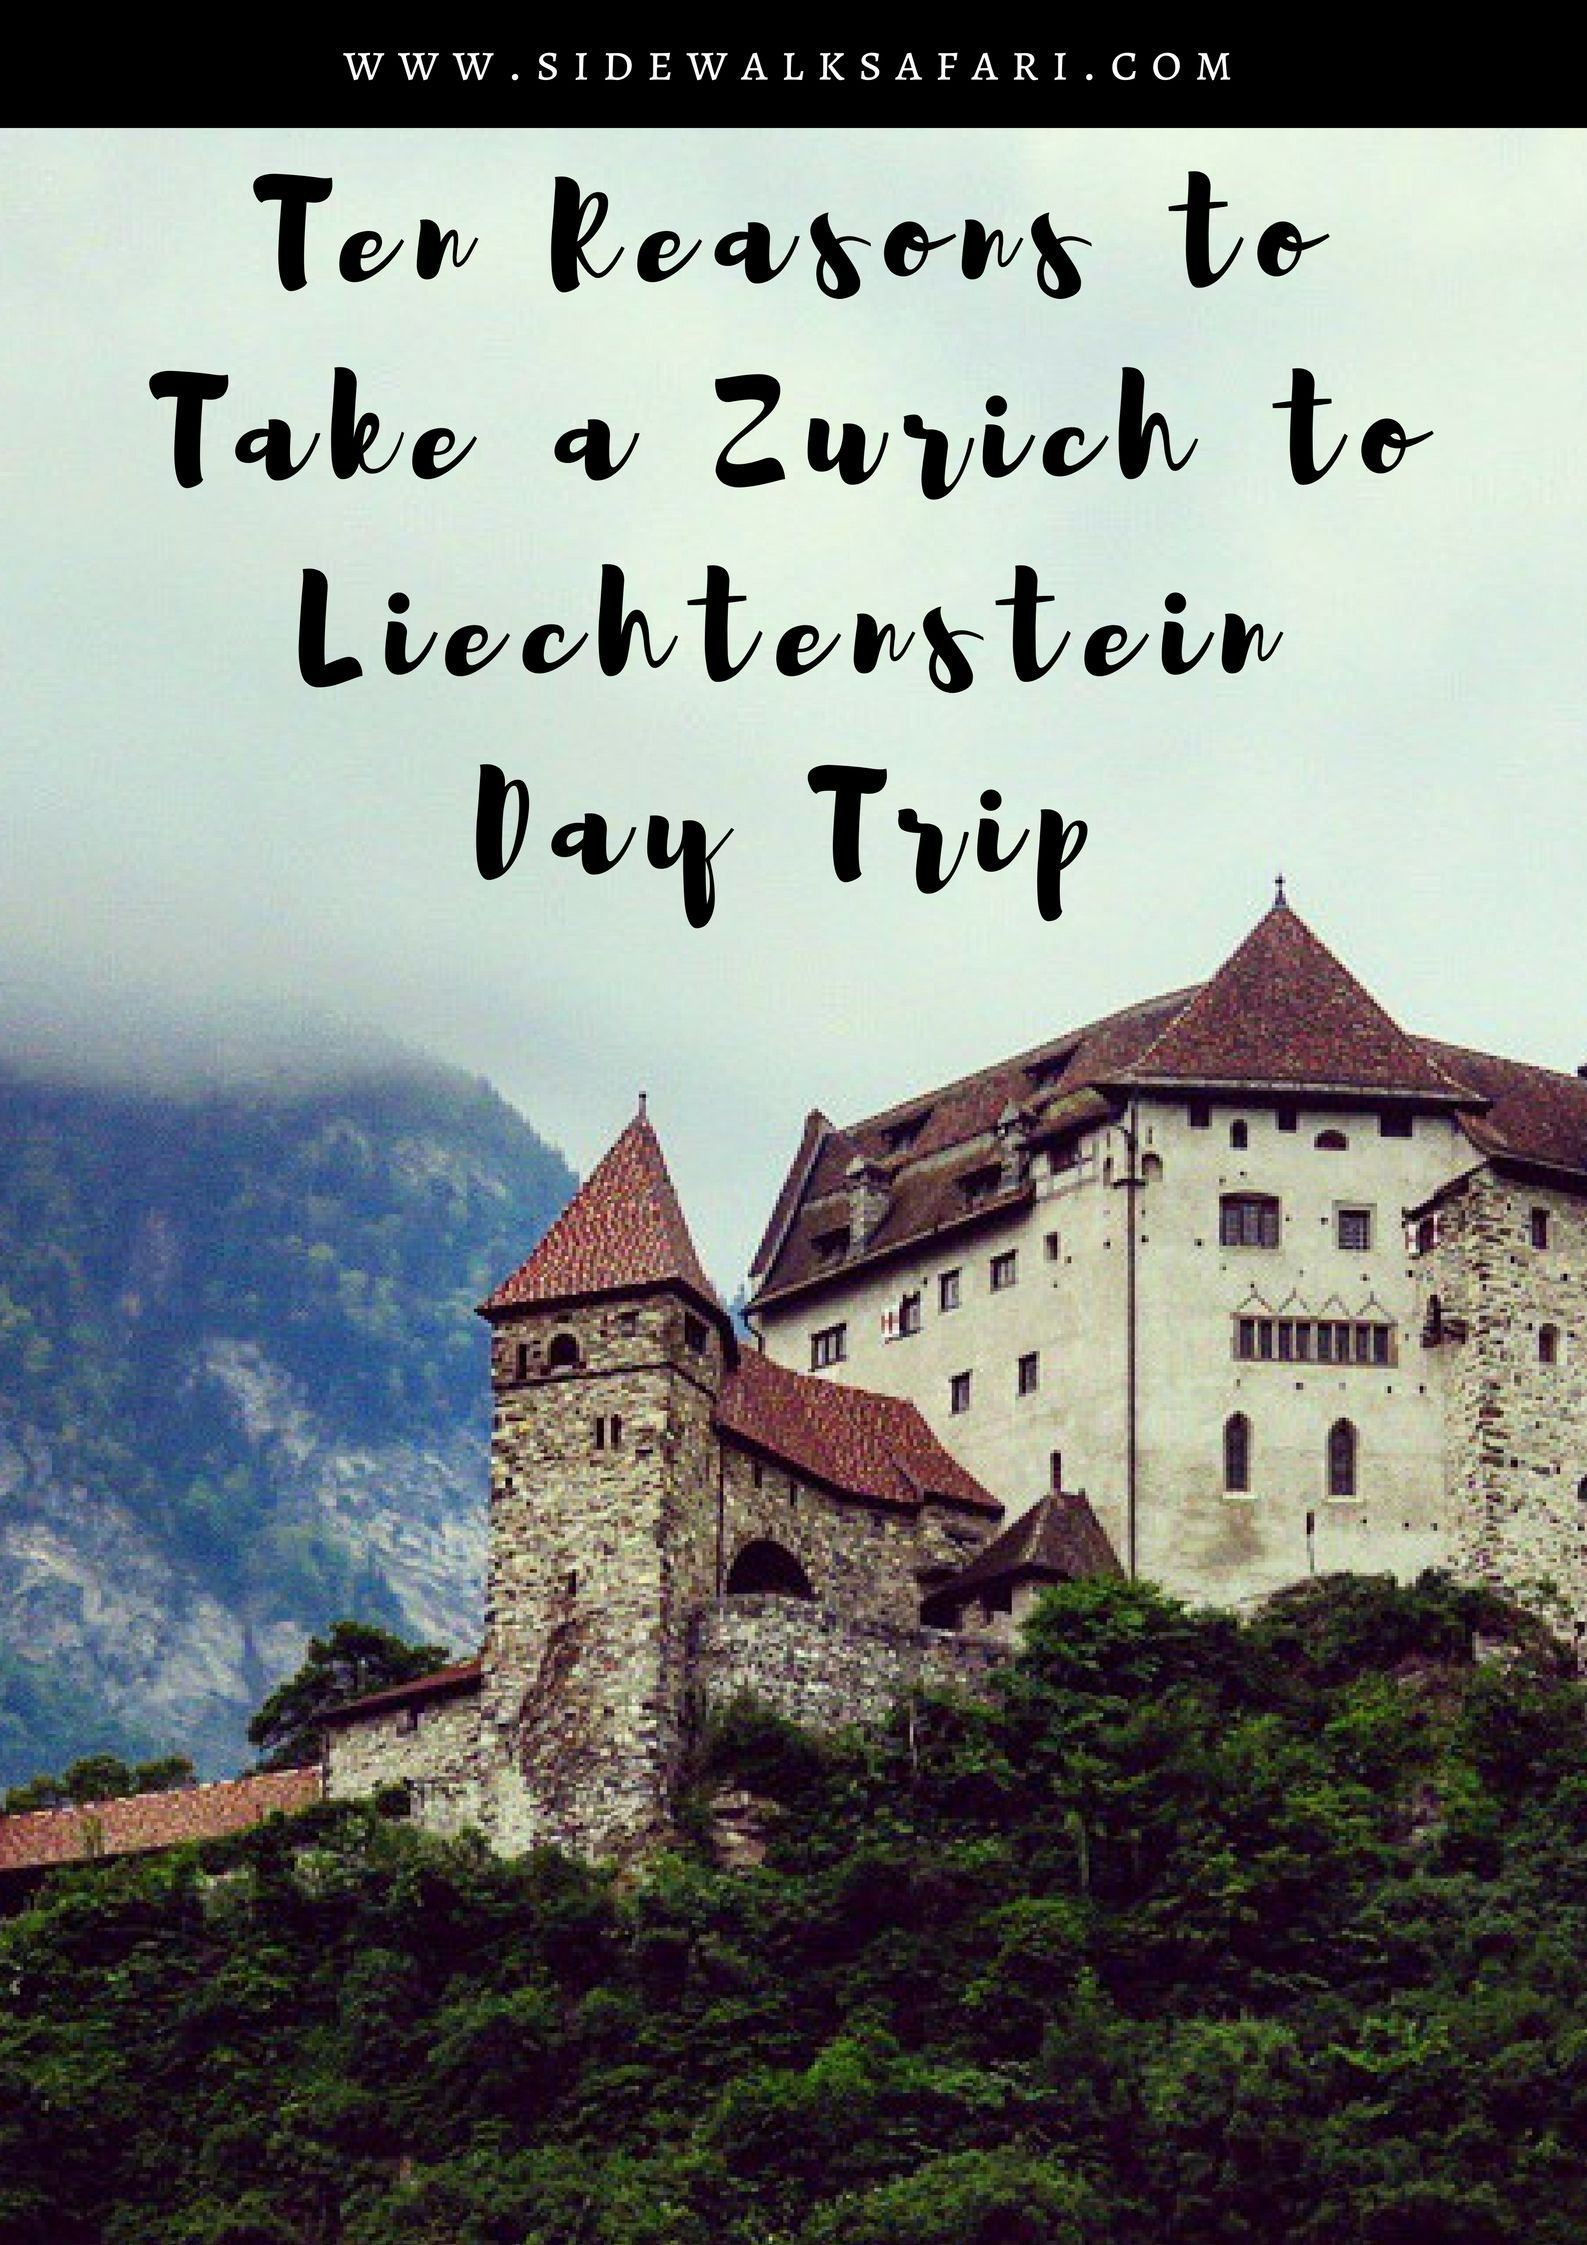 Ten Reasons to Take a Zurich to Liechtenstein Day Trip